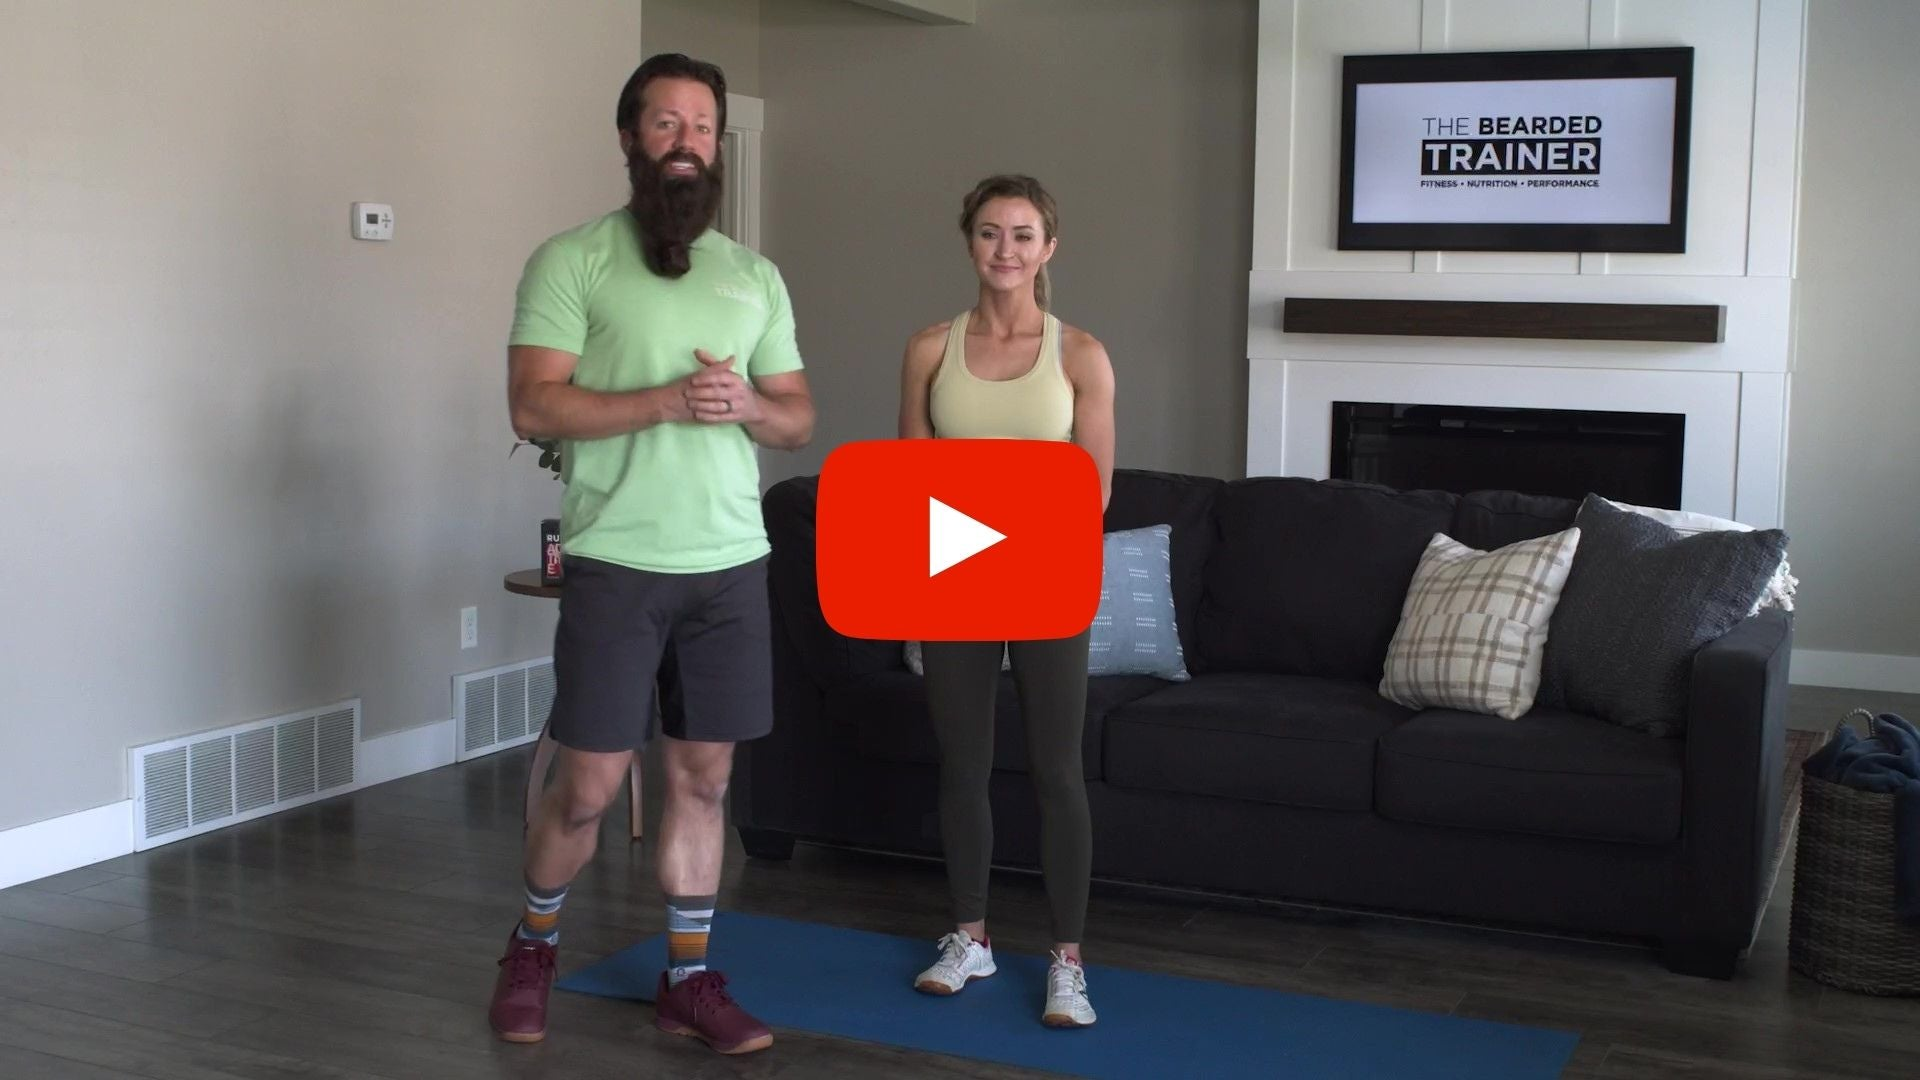 15 minute full body workout with The Bearded Trainer - Kyle & Shallan standing next to each other